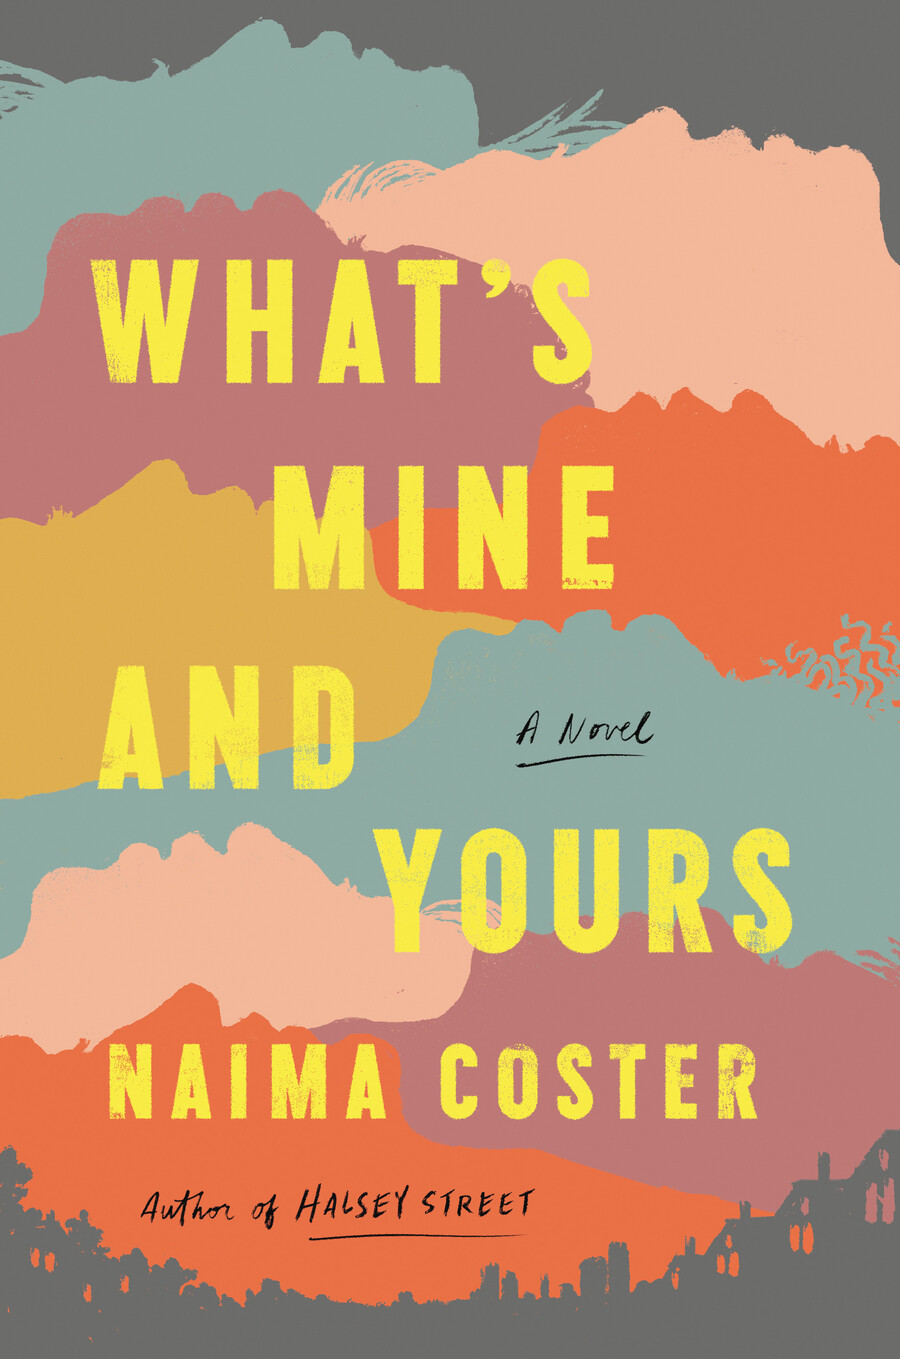 """illustrated book cover showing a layering of muted orange, pink, mauve, mustard, and turquoise-colored silhouettes of faces, a city skyline at the bottom with the words """"What's Mine and Yours, A Novel, Naima Coster, Author of Halsey"""" across the cover"""